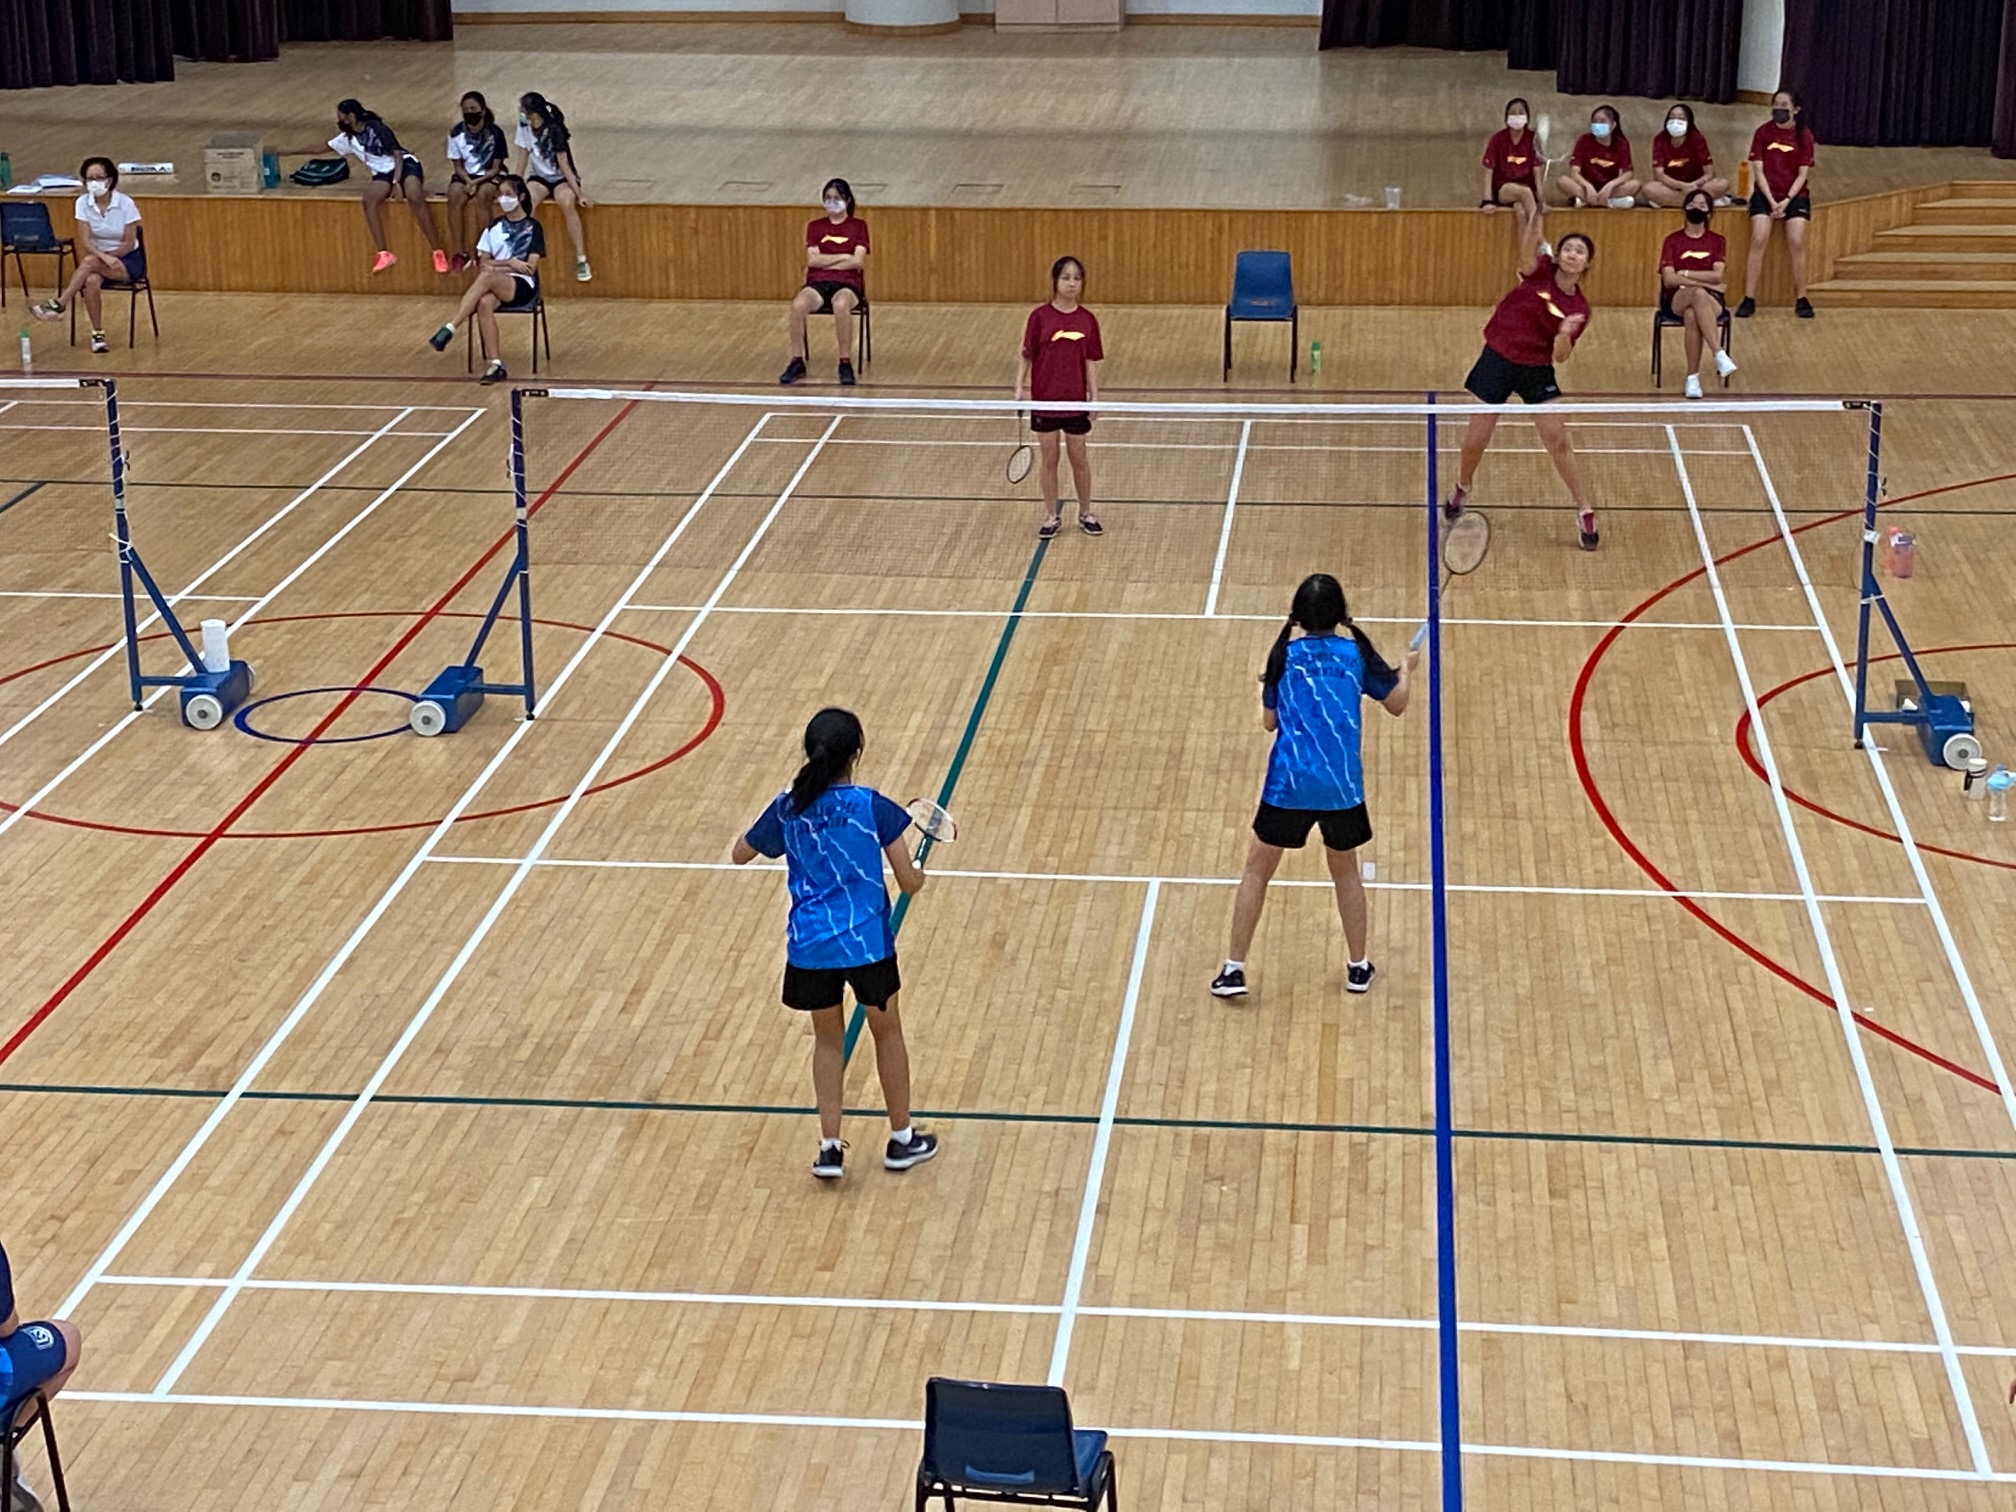 NSG B Div girls badminton - Compassvale (red) vs Woodlands (blue) first doubles